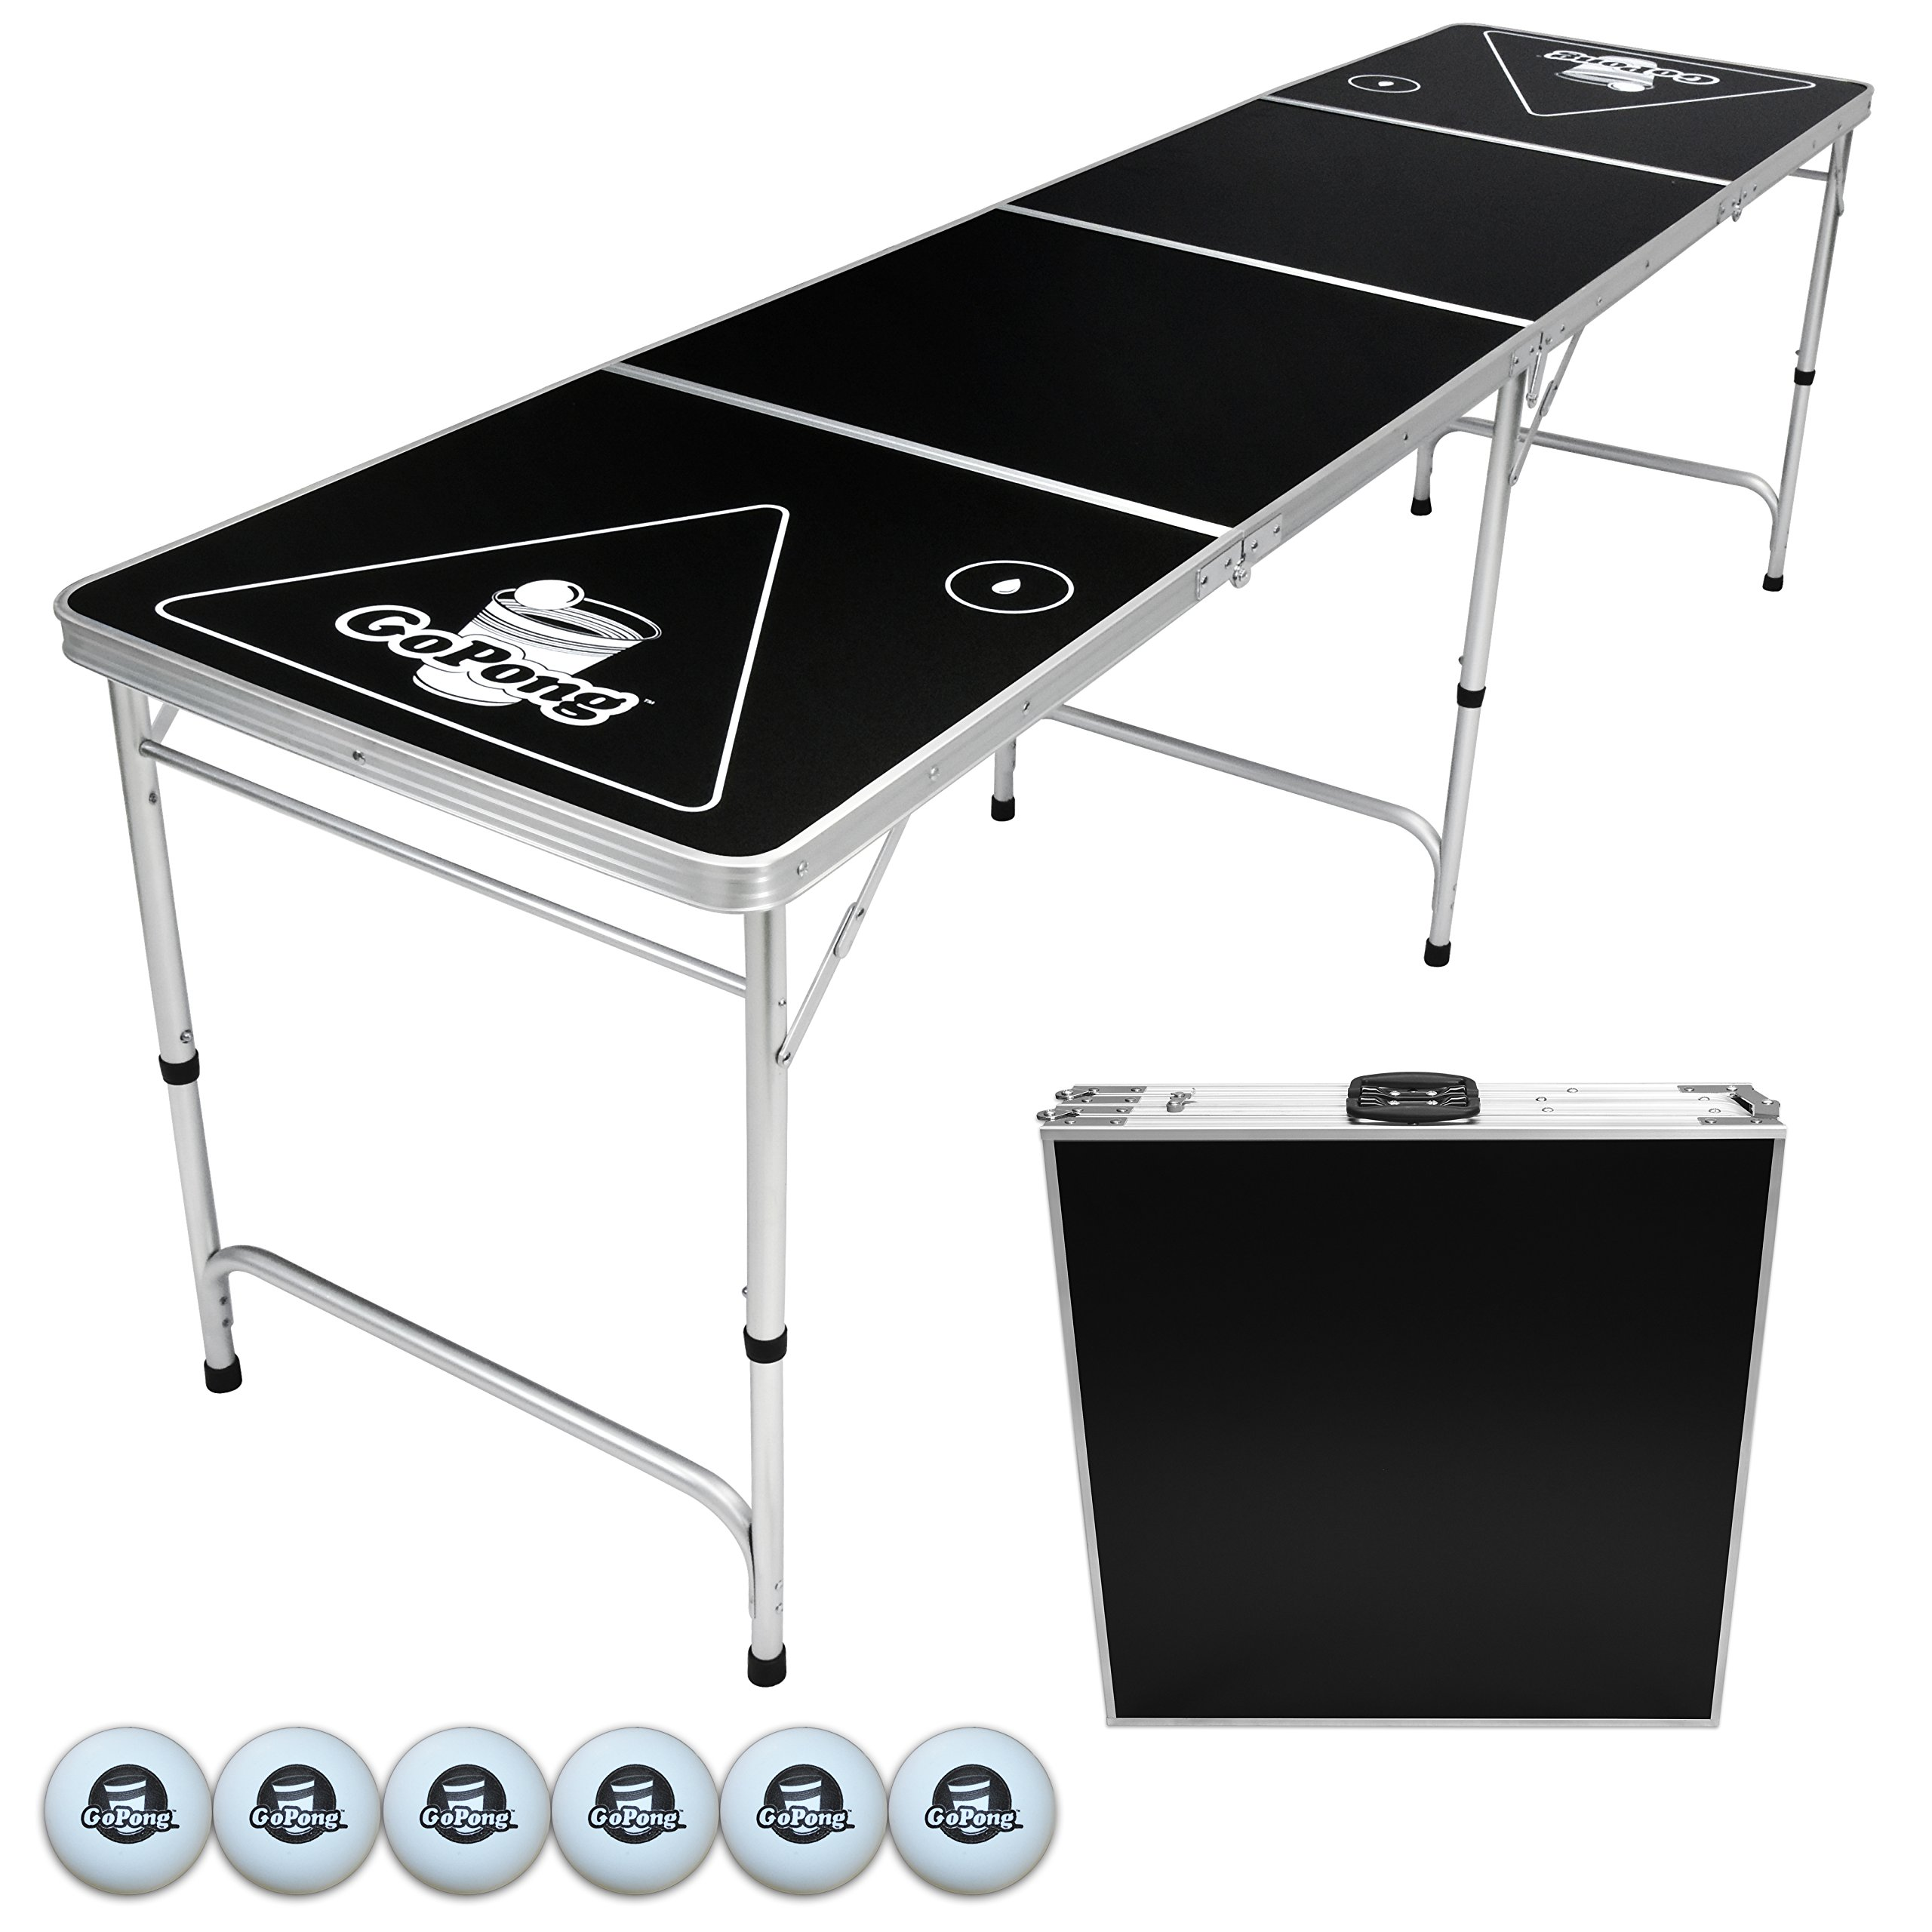 GoPong 8-Foot Portable Folding Beer Pong / Flip Cup Table (6 balls included) by GoPong